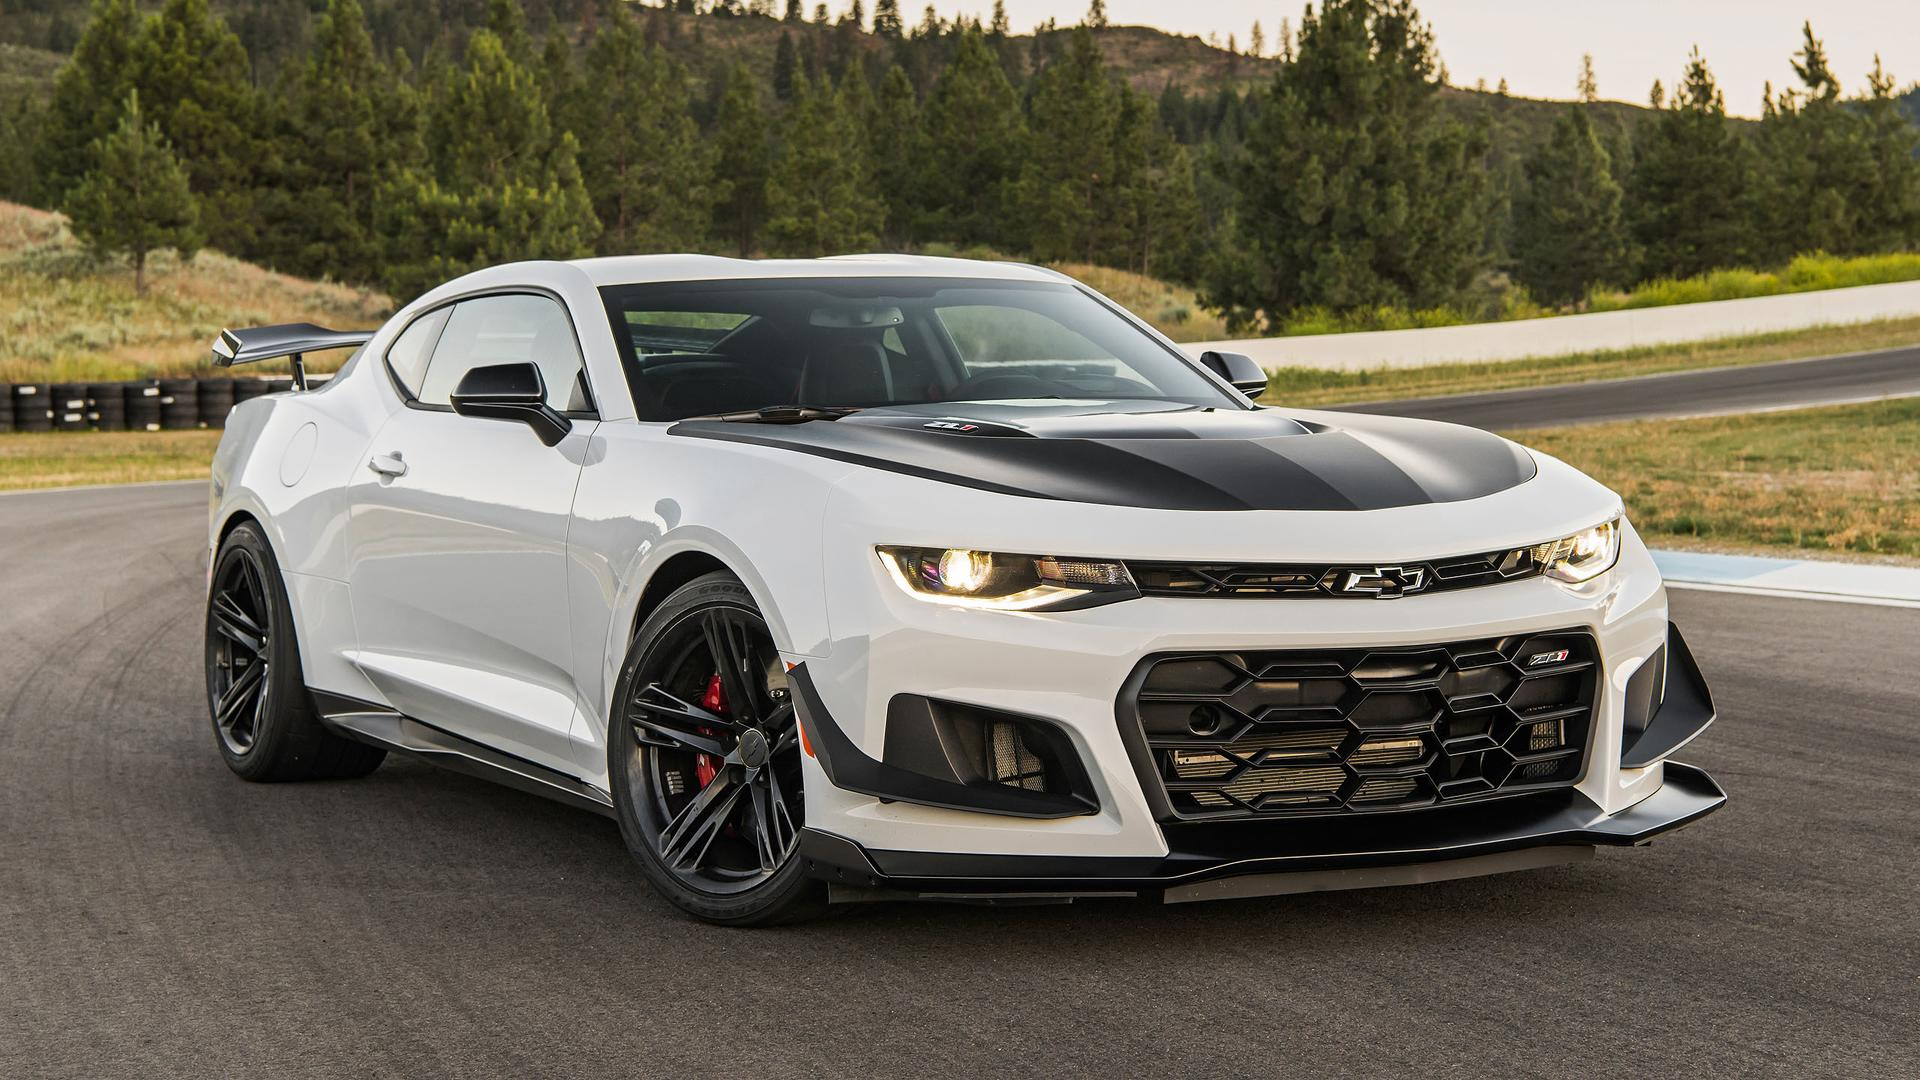 2018 Chevy Camaro Zl1 1le First Drive Best Of The Breed